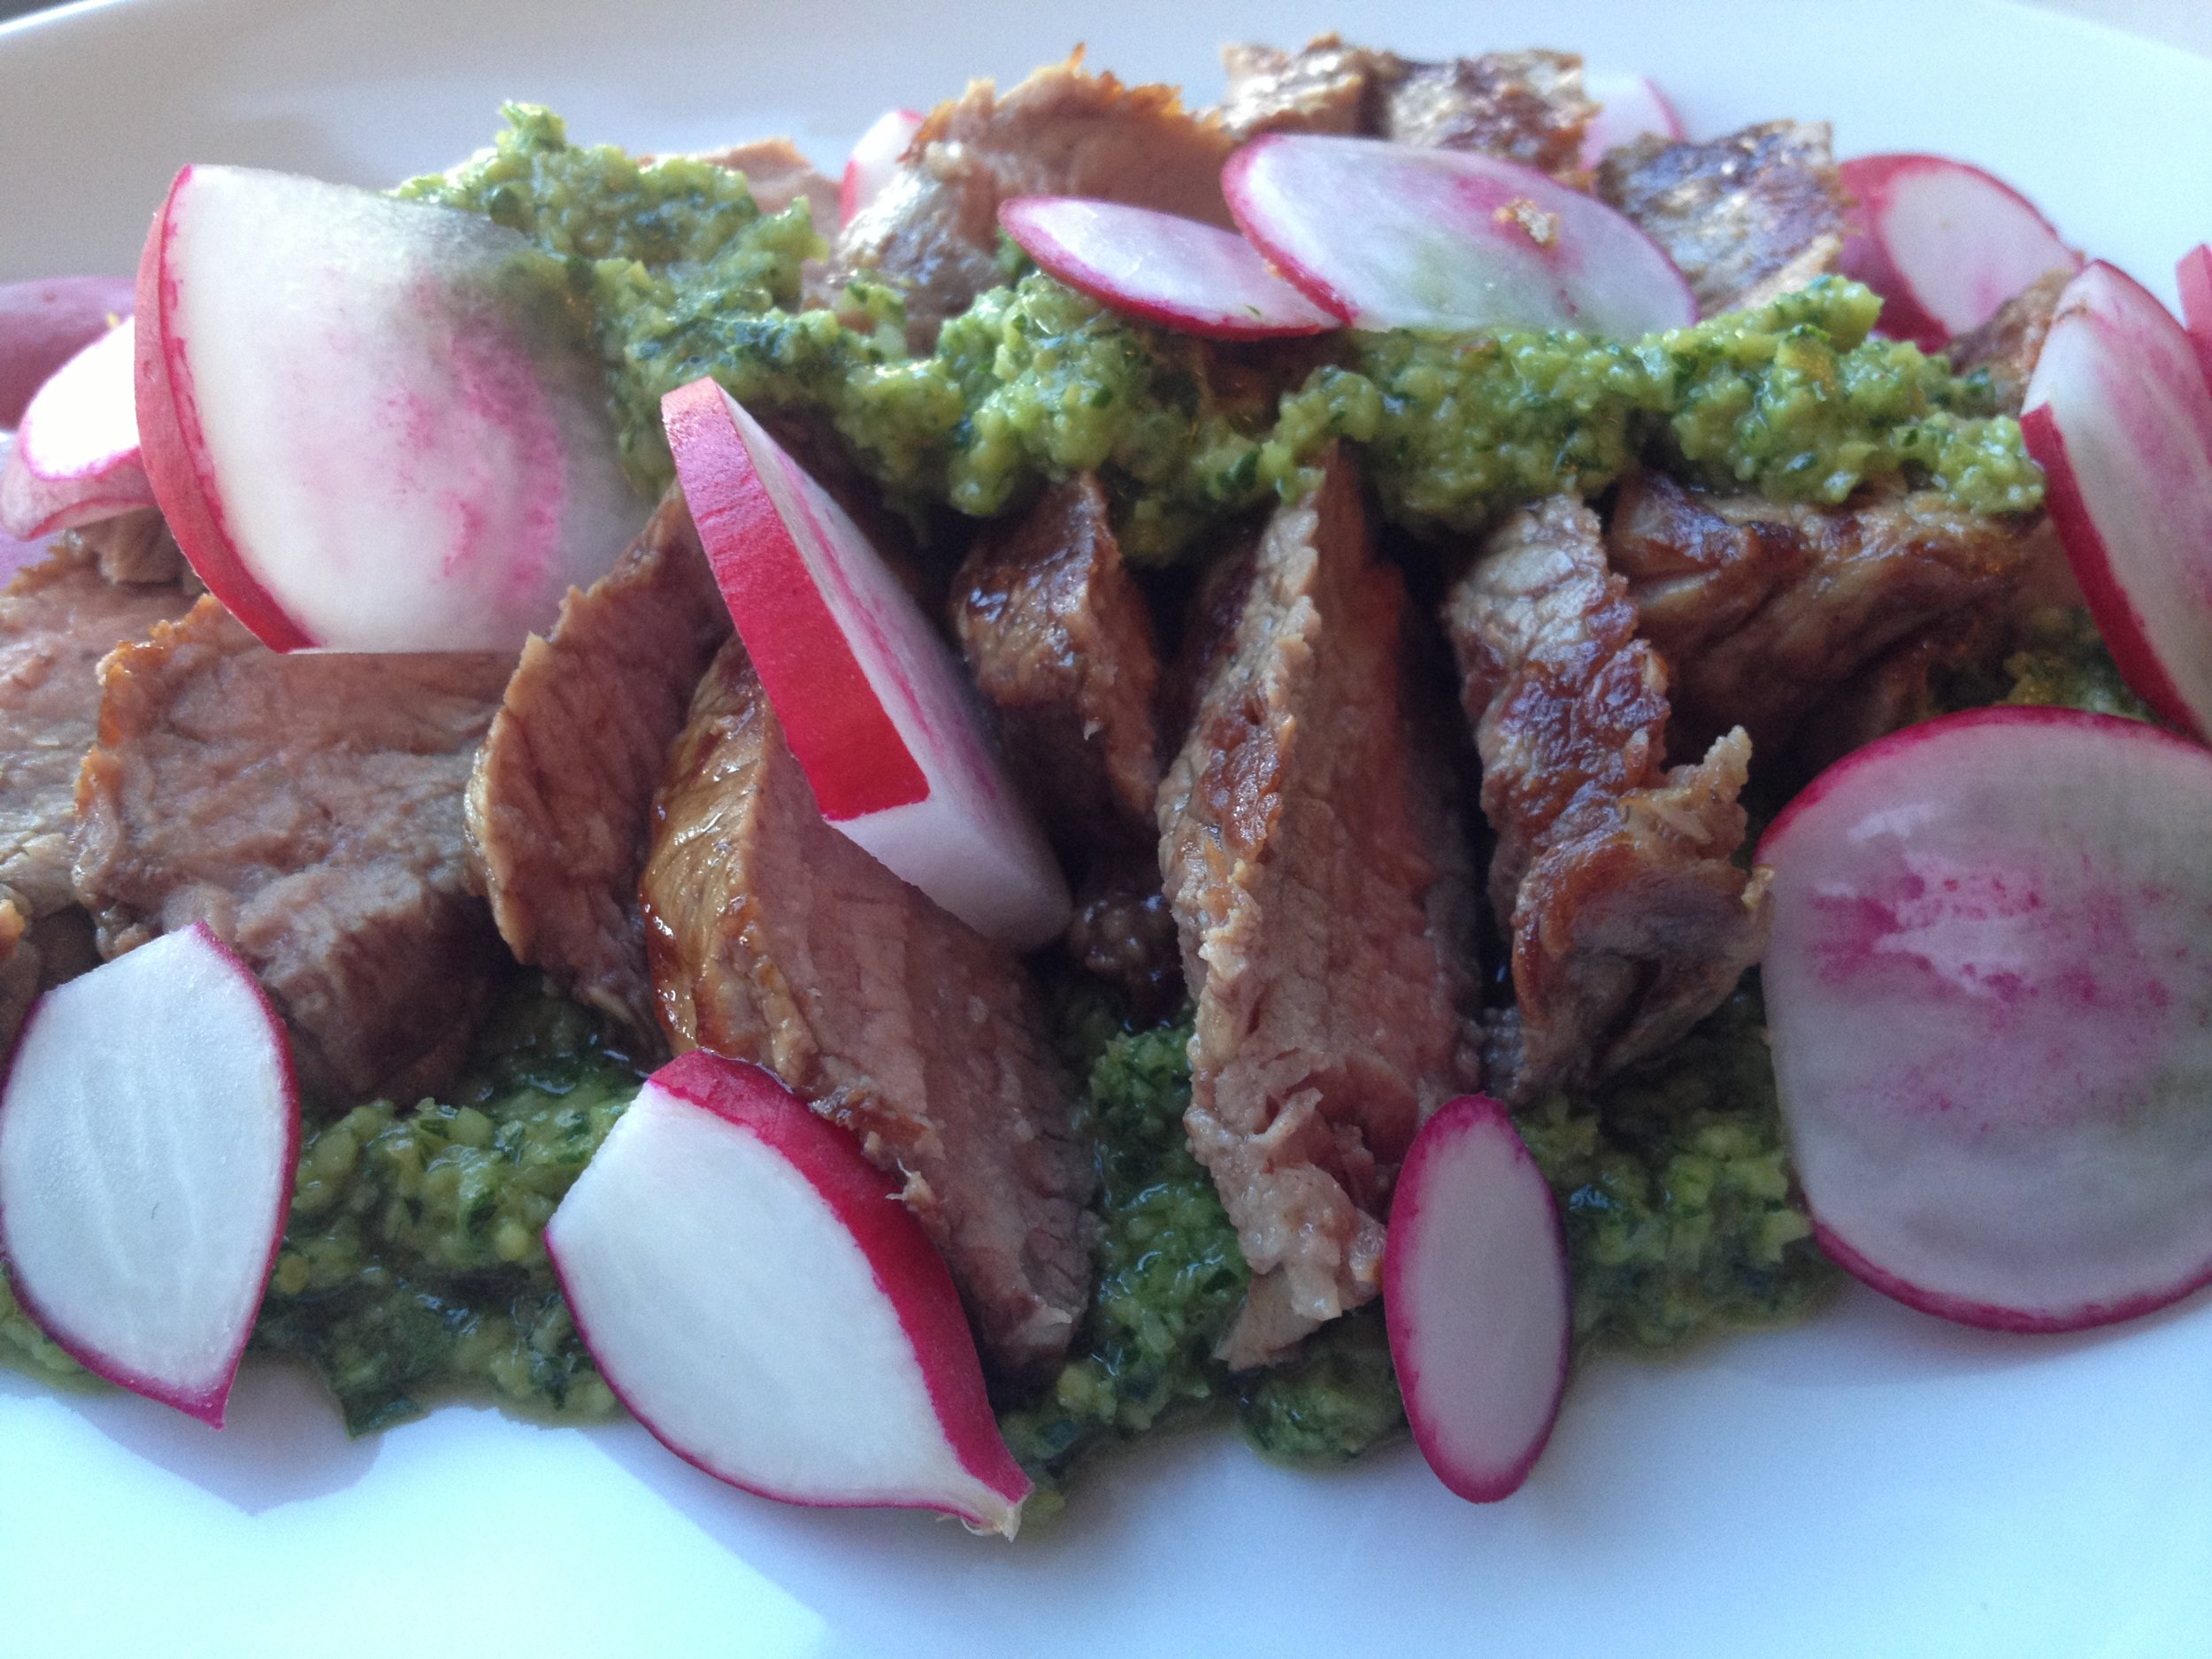 Parsley and Olive Sauce, with grilled Steak and some Radishes. (yes, my streak was slightly overcooked, but I tried!)